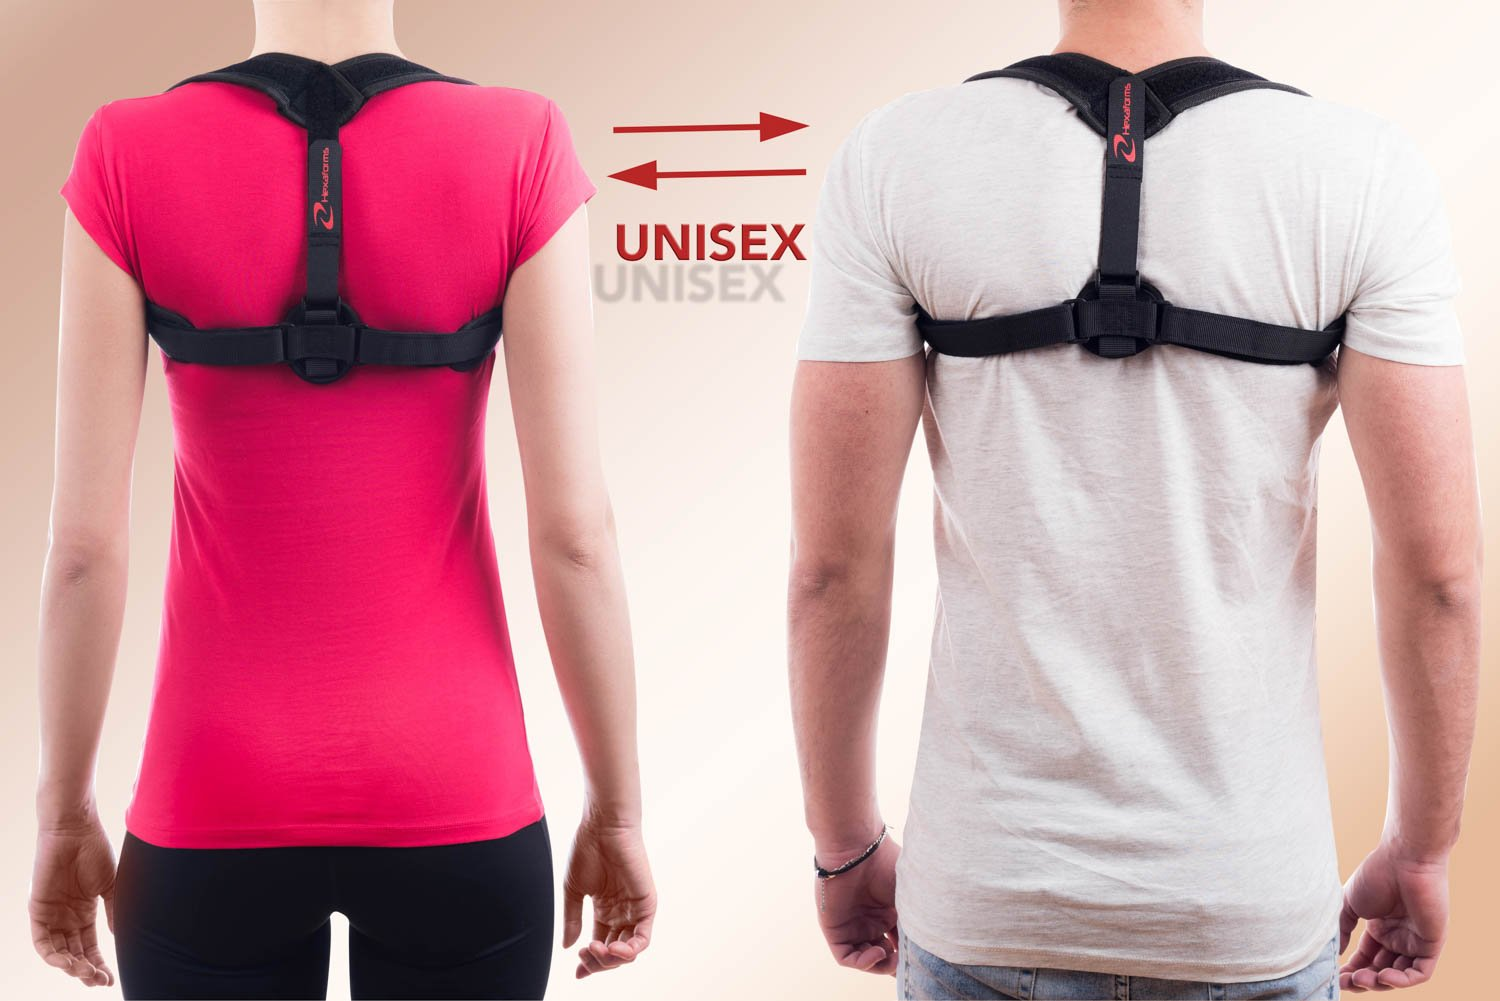 Hexaforms Back Posture Corrector for Women & Men - Effective and Comfortable Posture Brace for Slouching and Hunching - Clavicle Support for Upper Back & Shoulder Pain Relief - Medical Problems by Hexaforms (Image #5)